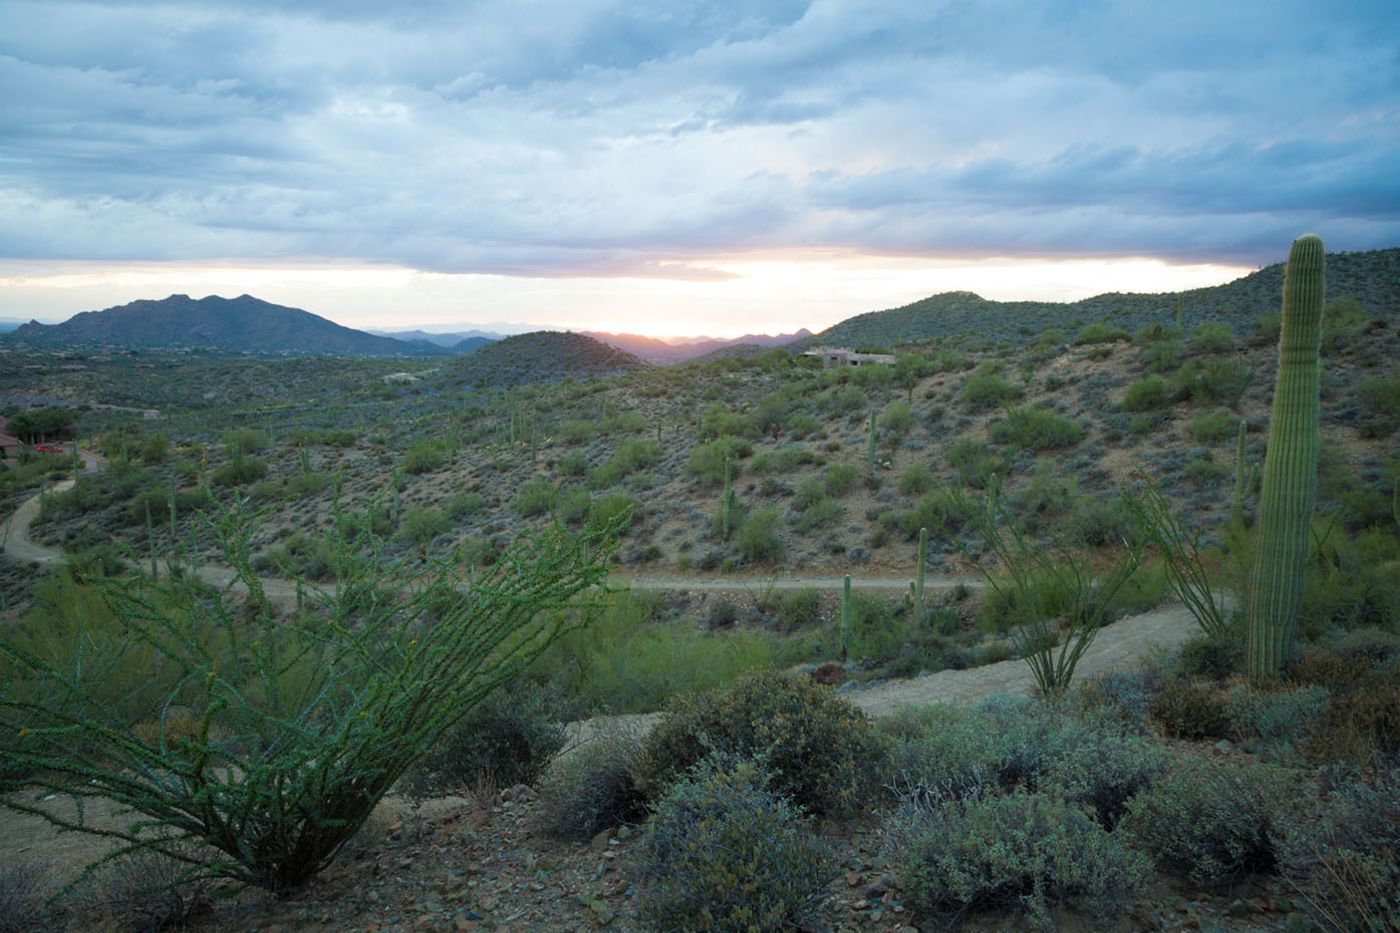 View Southwest from Lot 7 Carefree Ranch Homesteads